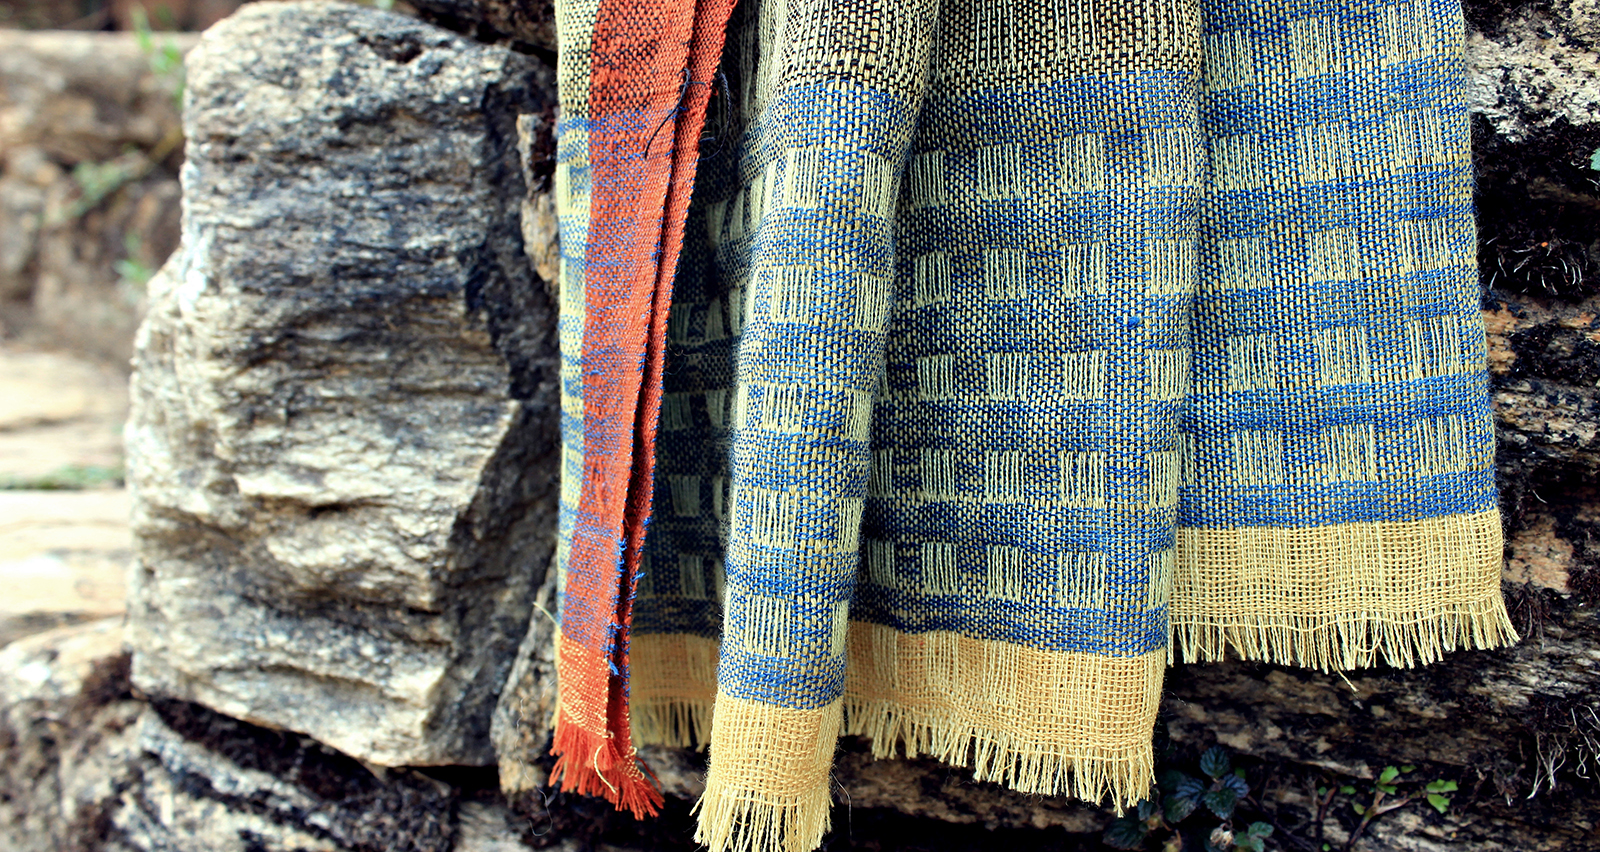 textile internship project Fab textiles workshop : open source fashion workshop 23 february 16:00-20:00 24 february 10:00-20:00 contacto : [email protected] reserve your place here.